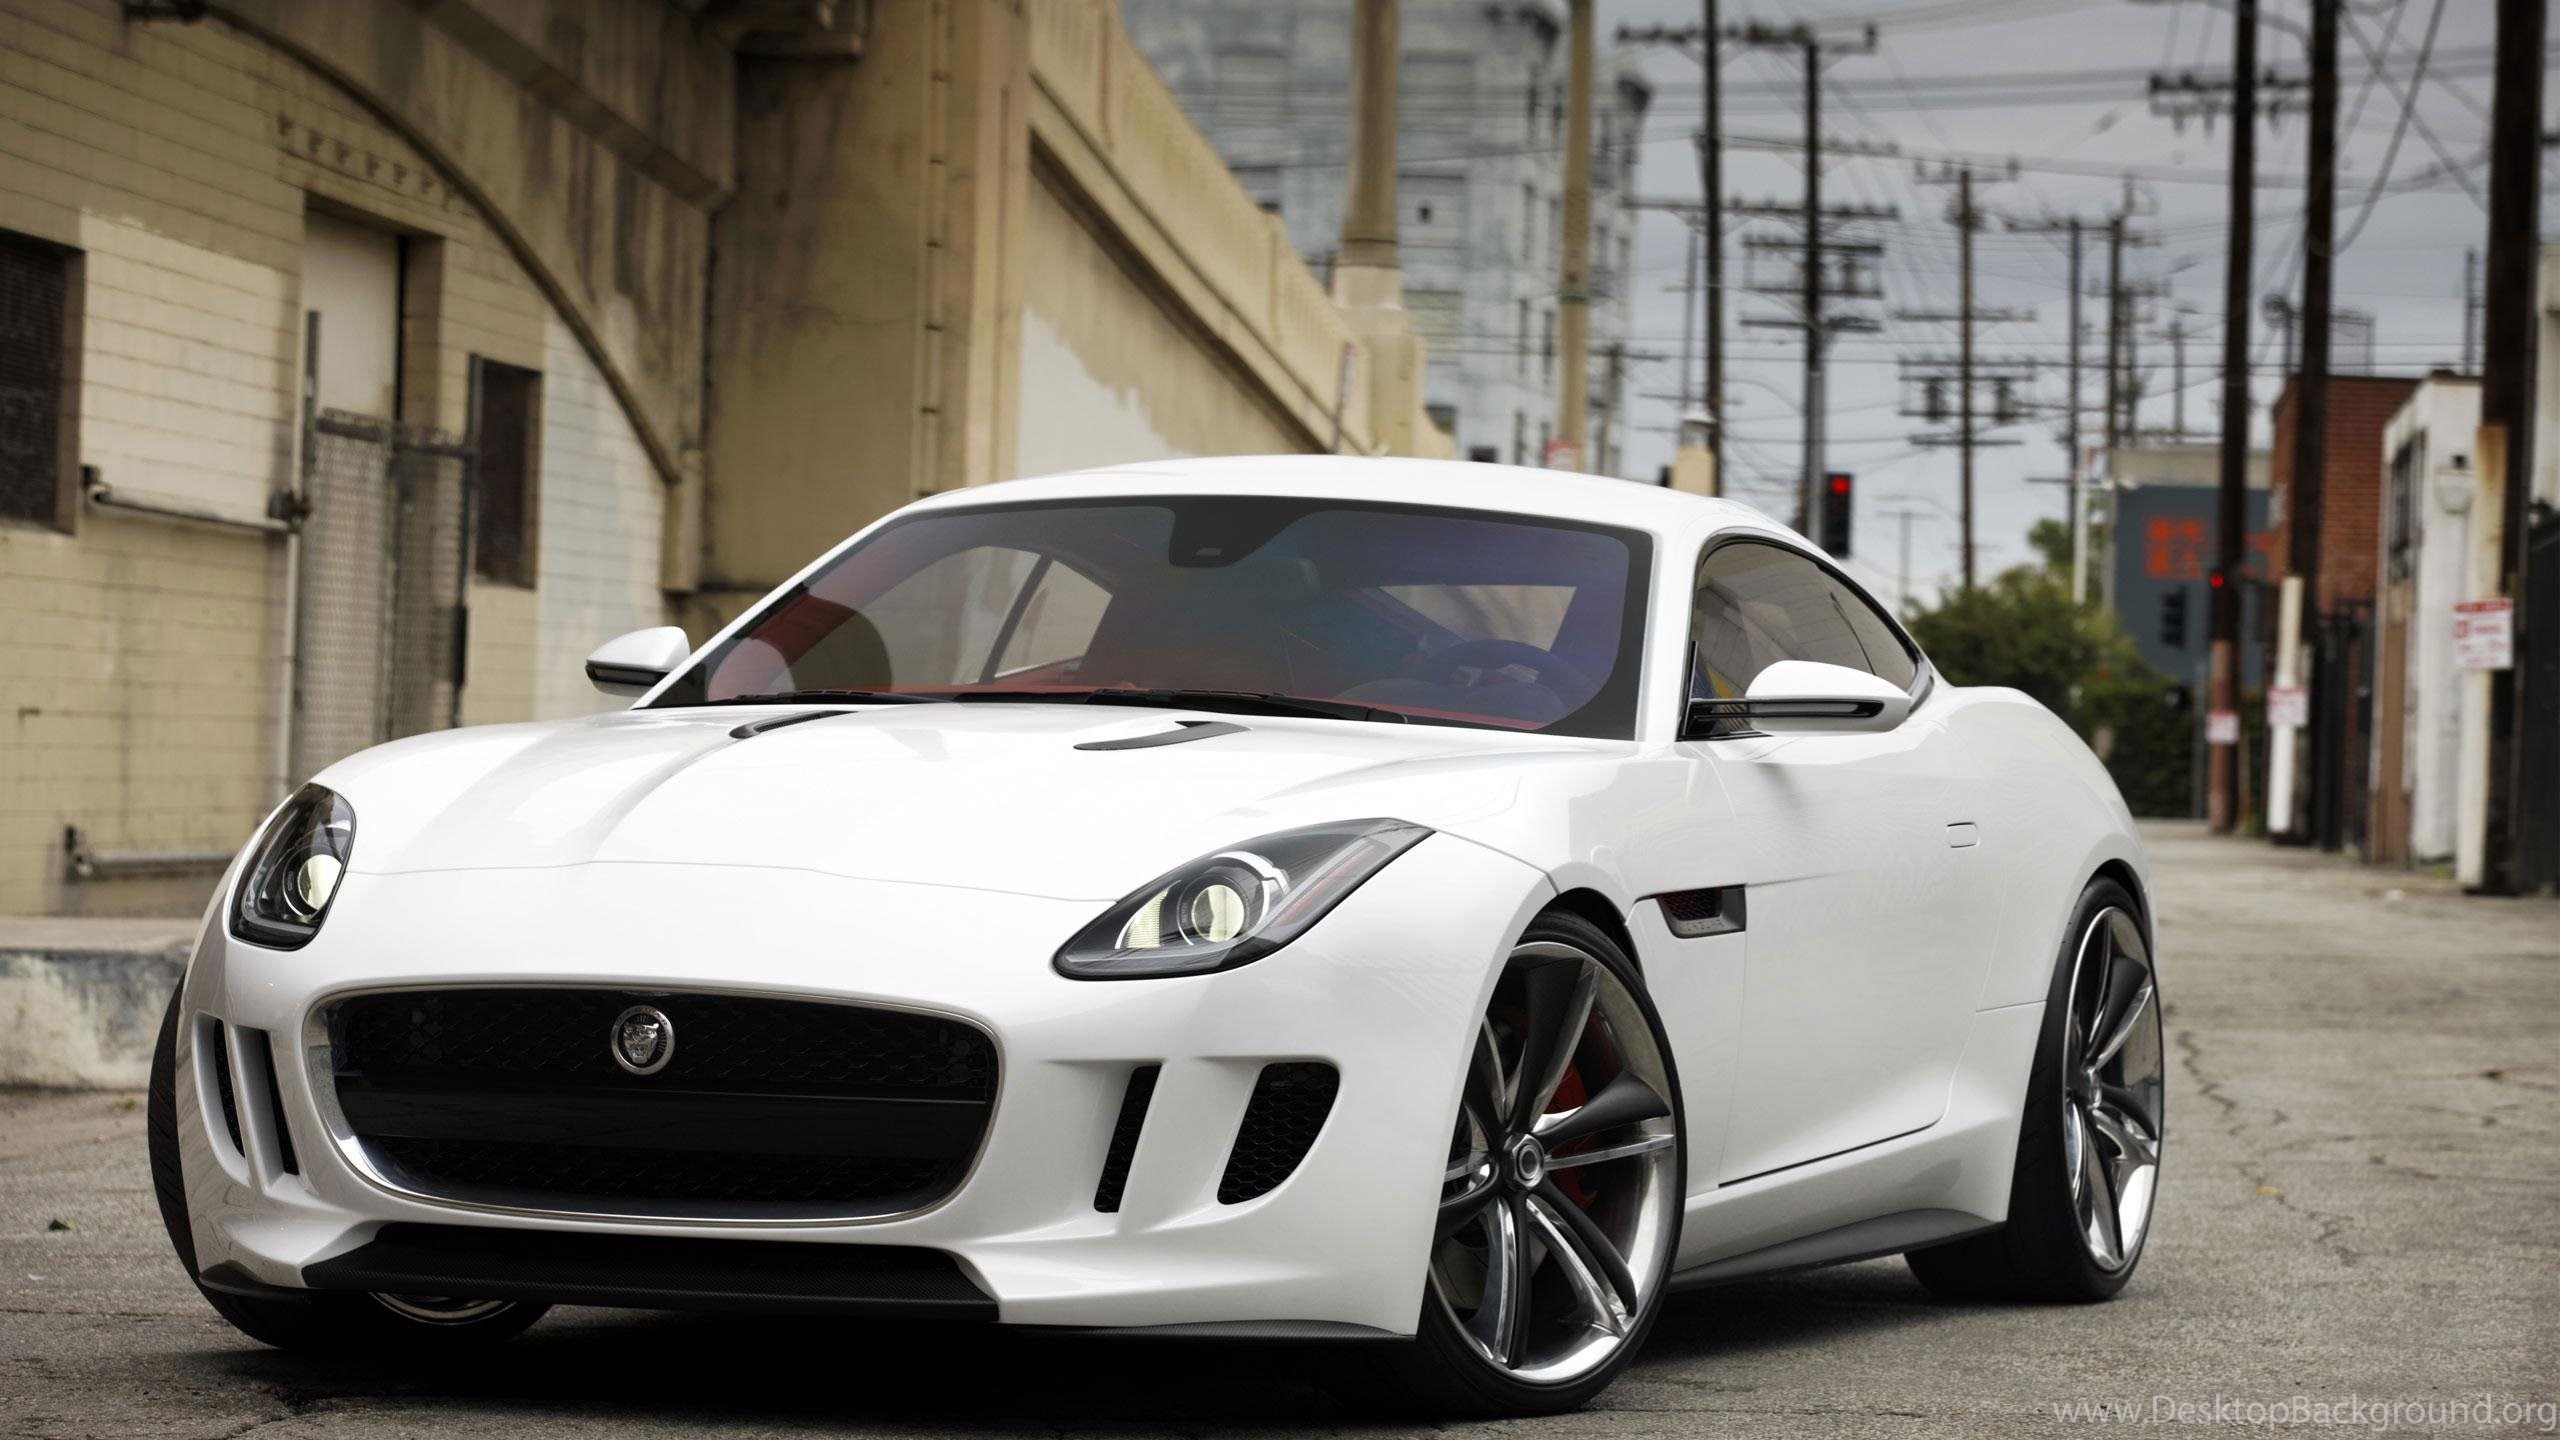 Cool Jaguar Car Wallpapers Httpwhatstrendingonlinecomcool